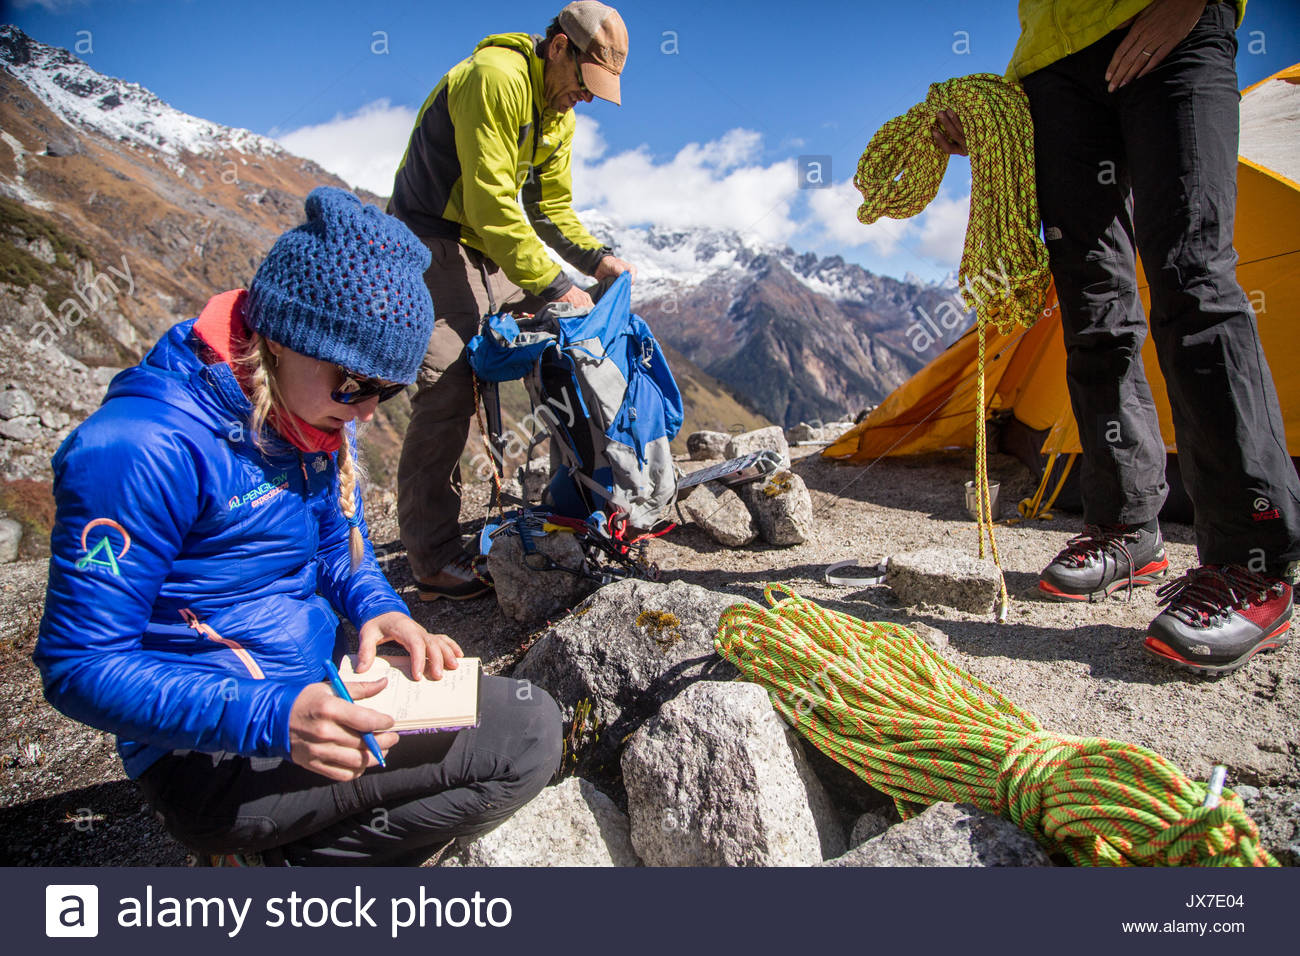 Expedition members check gear and review plans prior to setting out mountaineering. - Stock Image